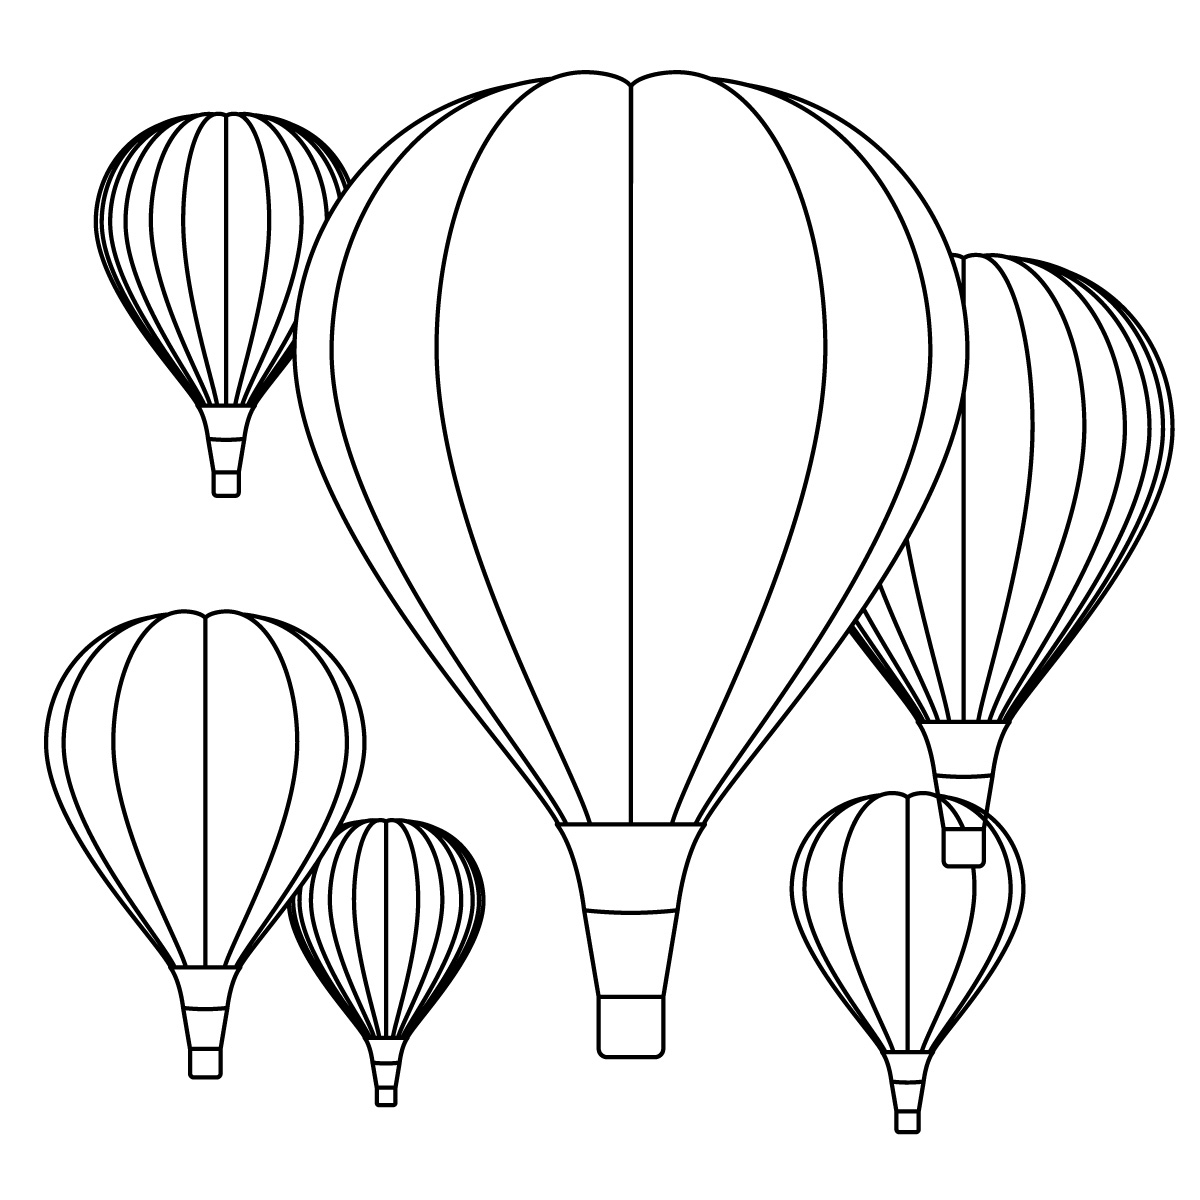 1200x1200 Drawing Of A Hot Air Balloon Hot Air Balloon Basket Drawing